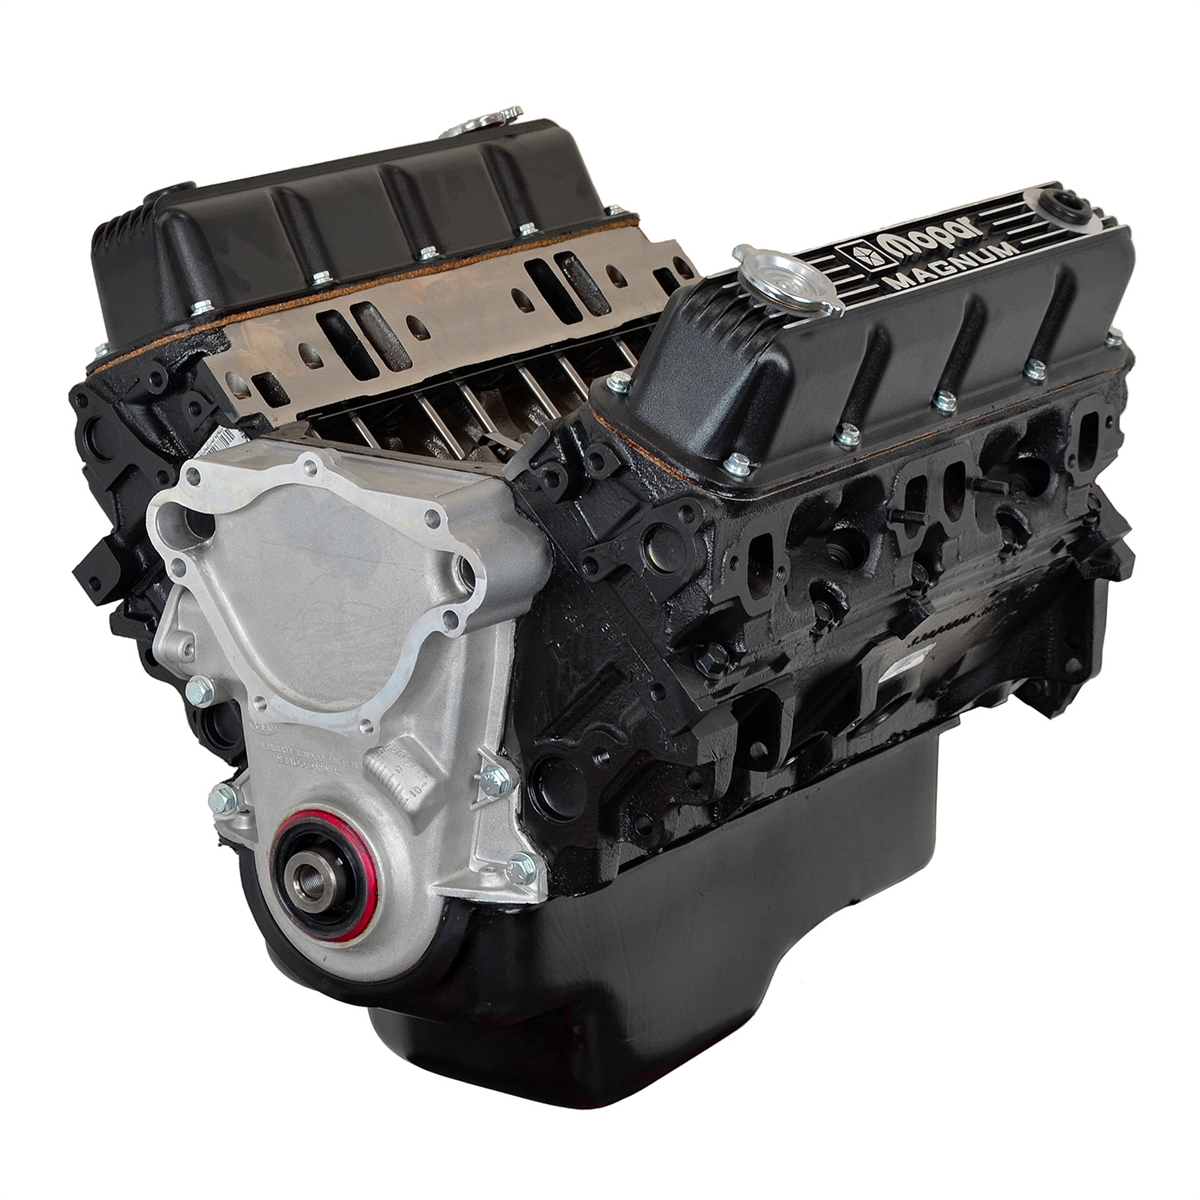 ATK HP73 Chrysler 360 Magnum Engine 320HP